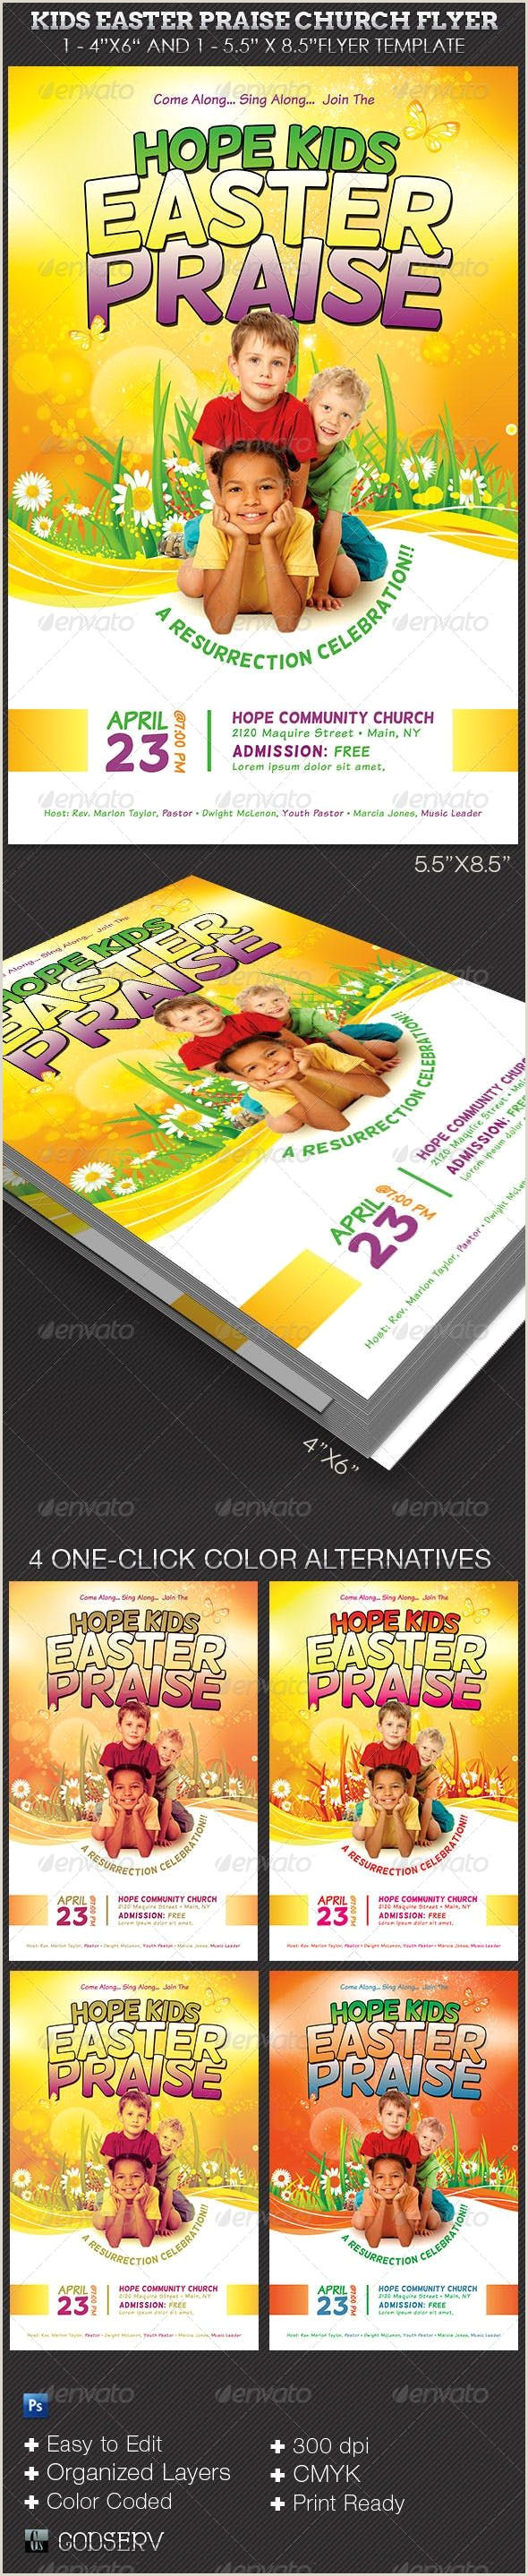 Kids Easter Praise Church Flyer Template — shop PSD